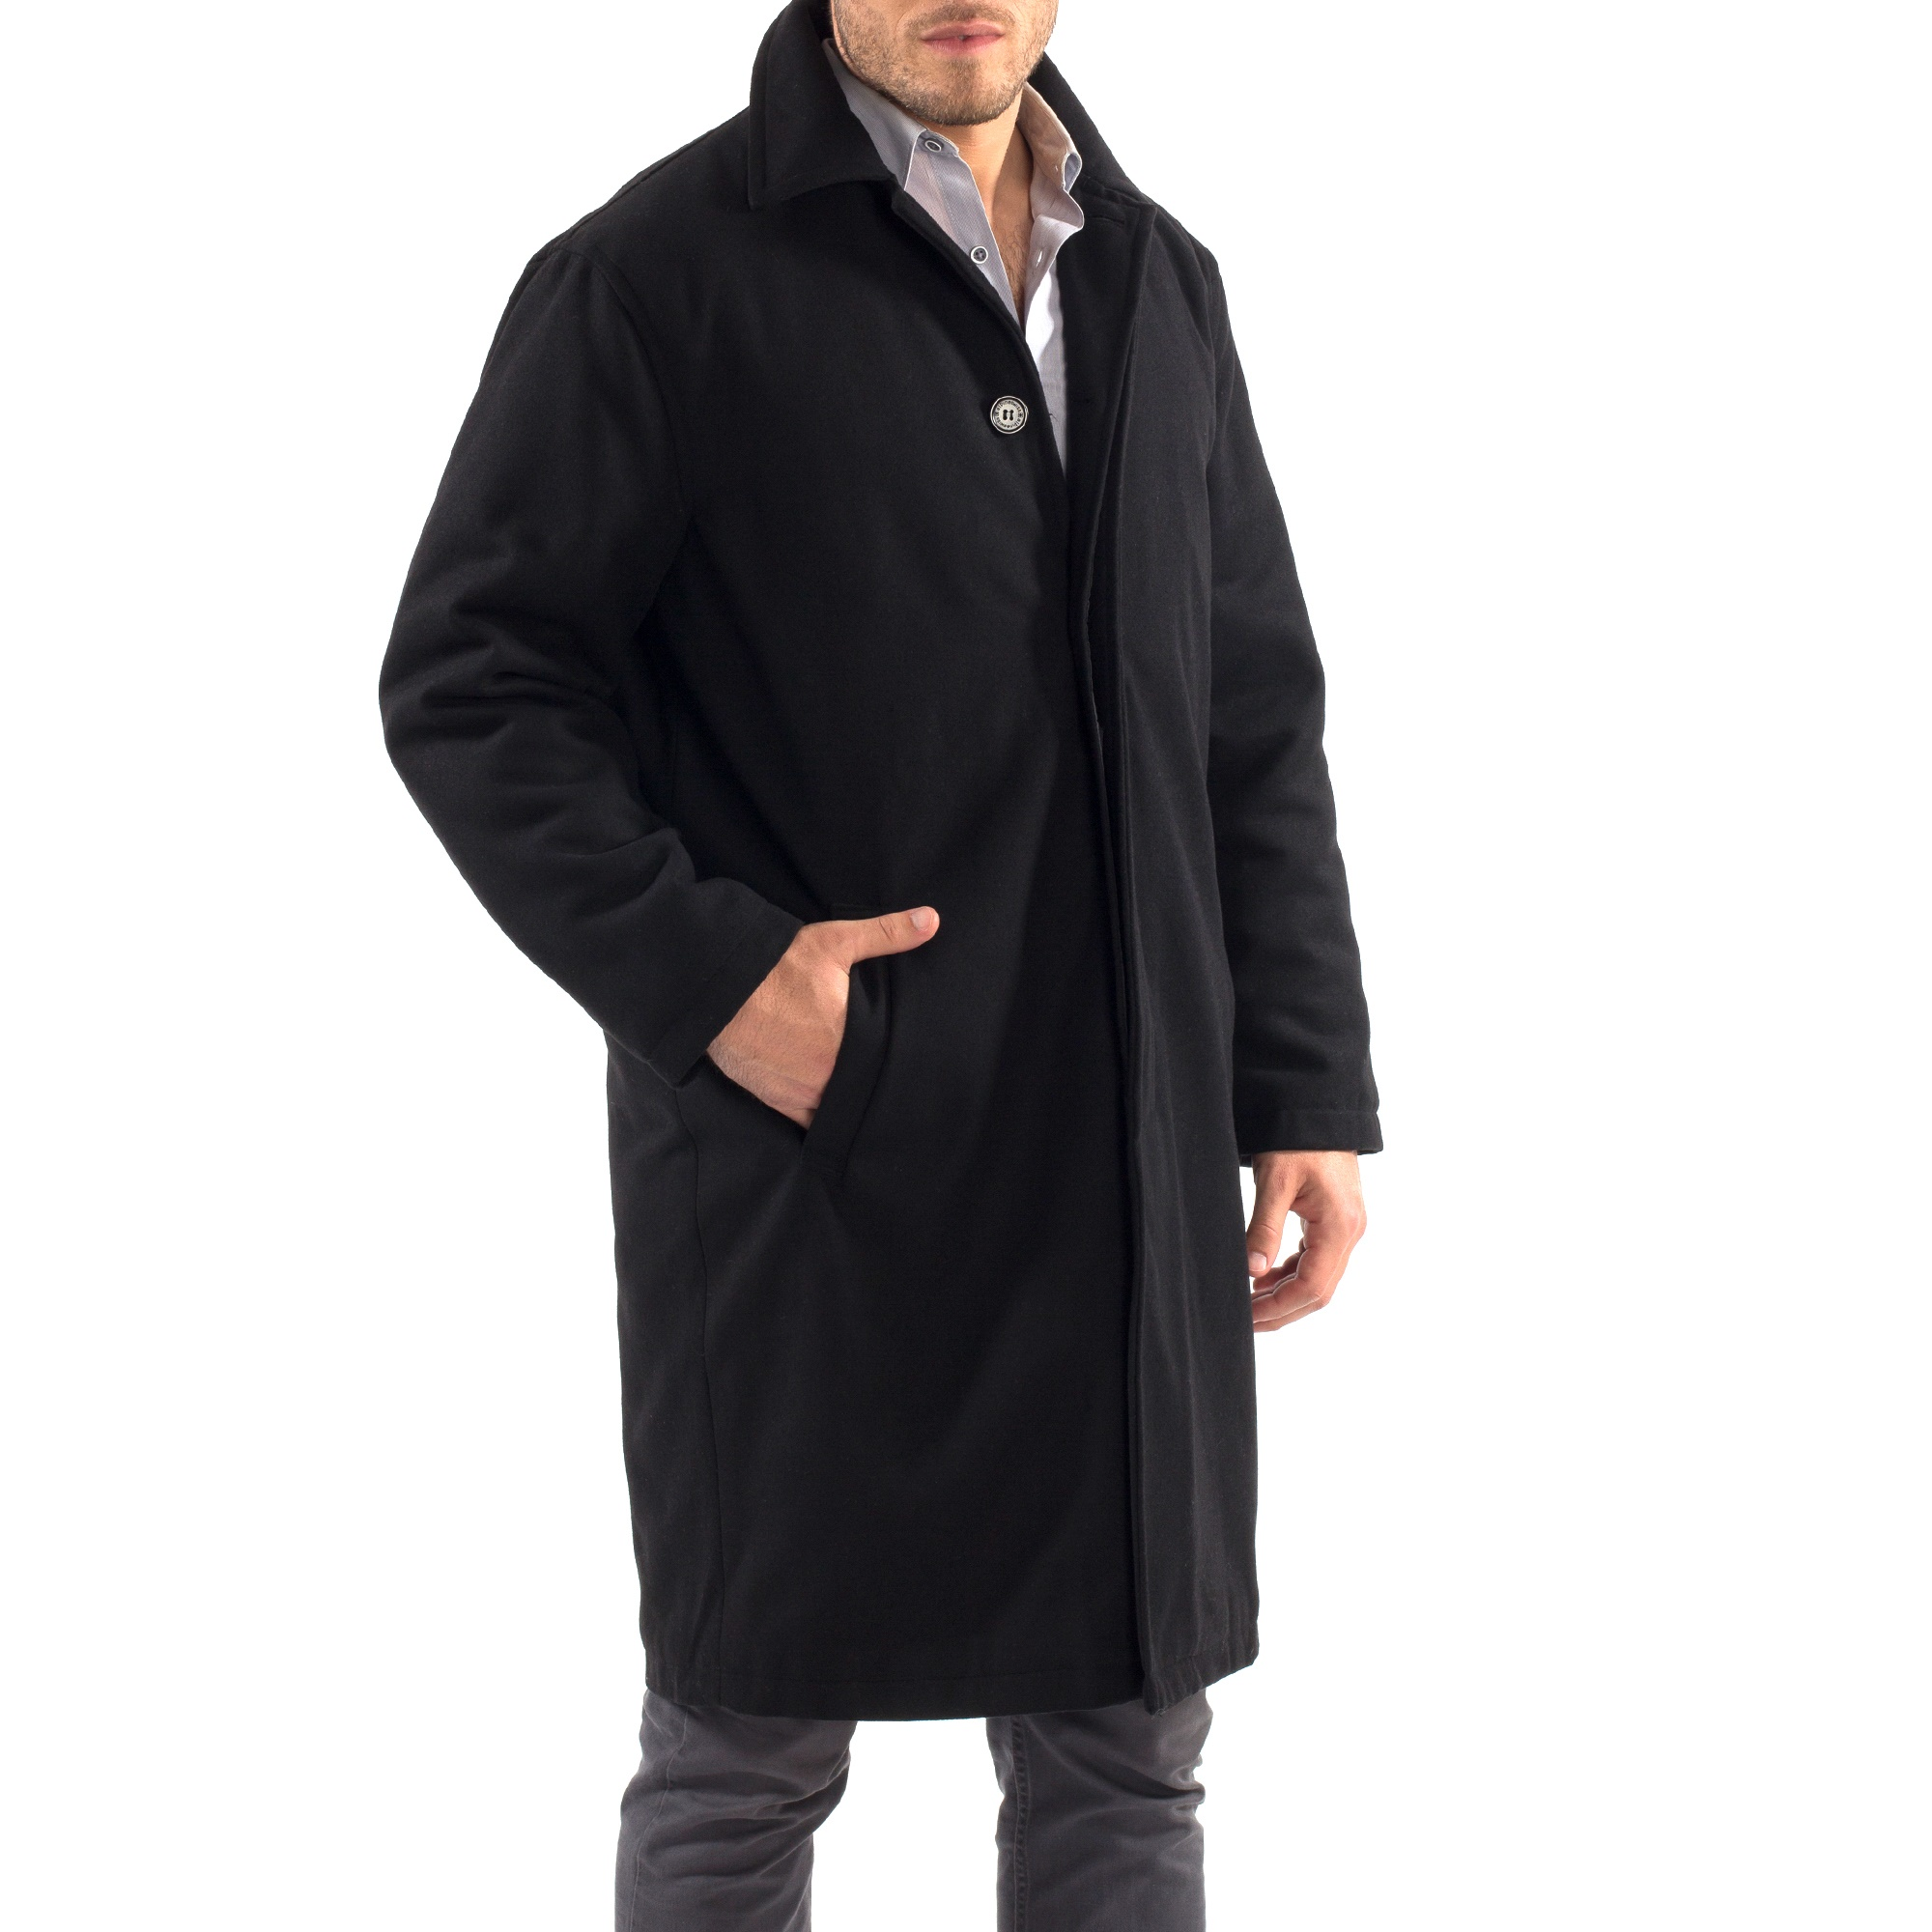 Alpine-Swiss-Mens-Zach-Knee-Length-Jacket-Top-Coat-Trench-Wool-Blend-Overcoat thumbnail 16